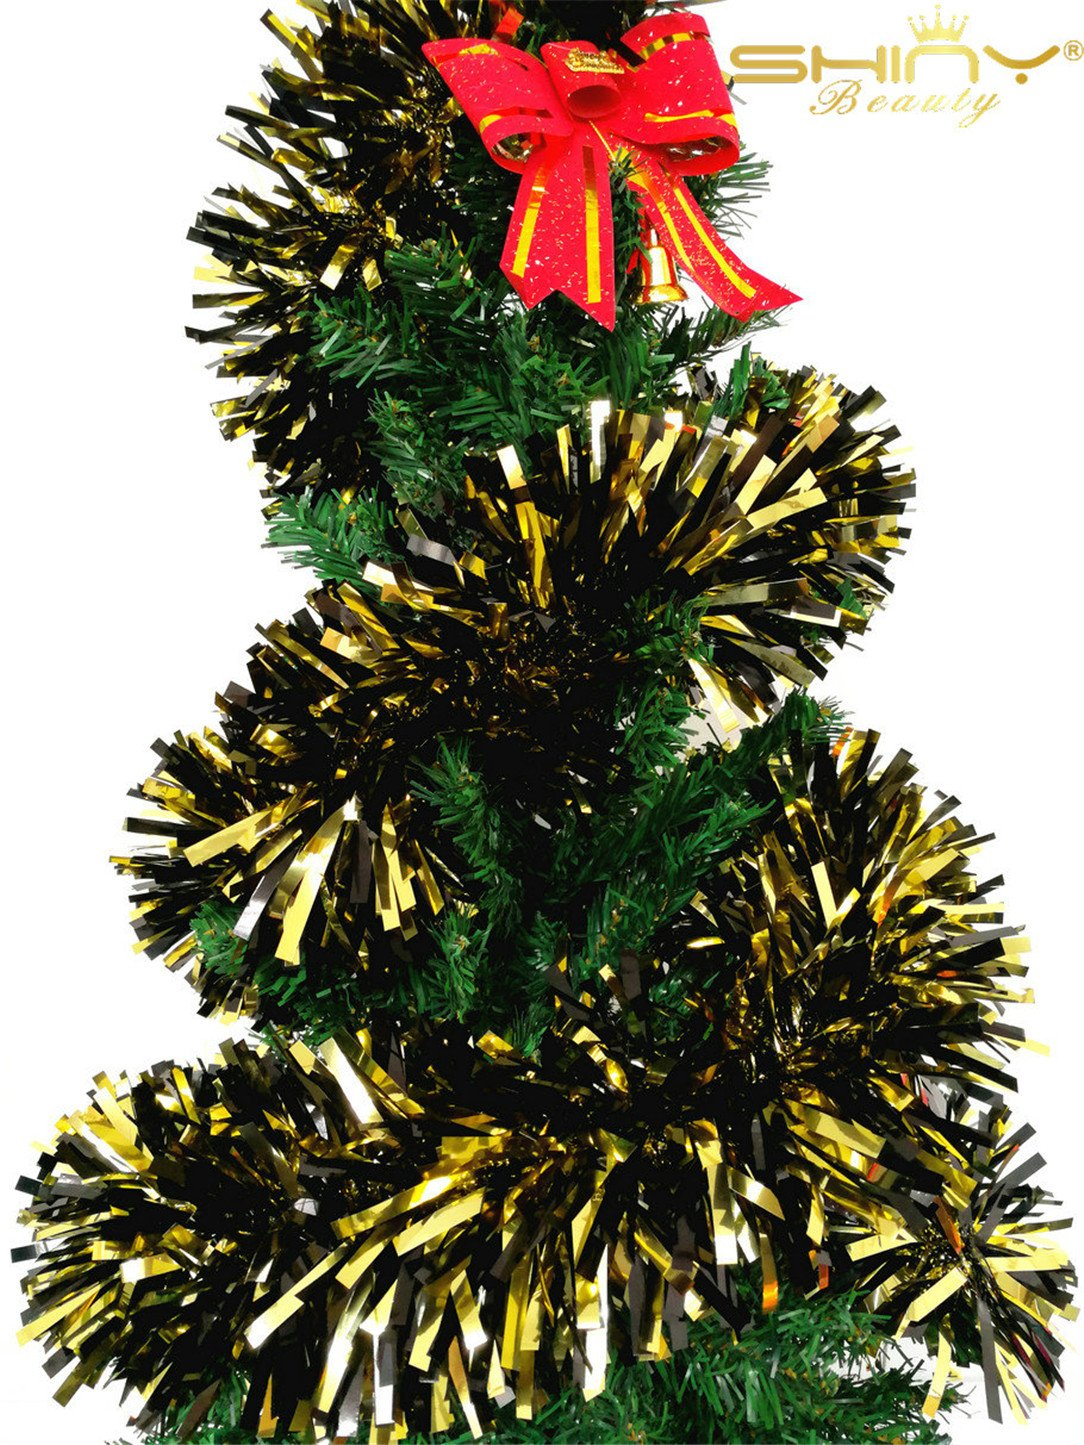 DUOBAO Christmas Tinsel Garland Thick and Full Tinsel Sparkly Classic Party Ornaments Hanging Christmas Tree Ceiling Decorations, 15 Pcs 6.5 Ft (2M) x 5.5 Inch Wide, Black & Gold ~1028S by DUOBAO